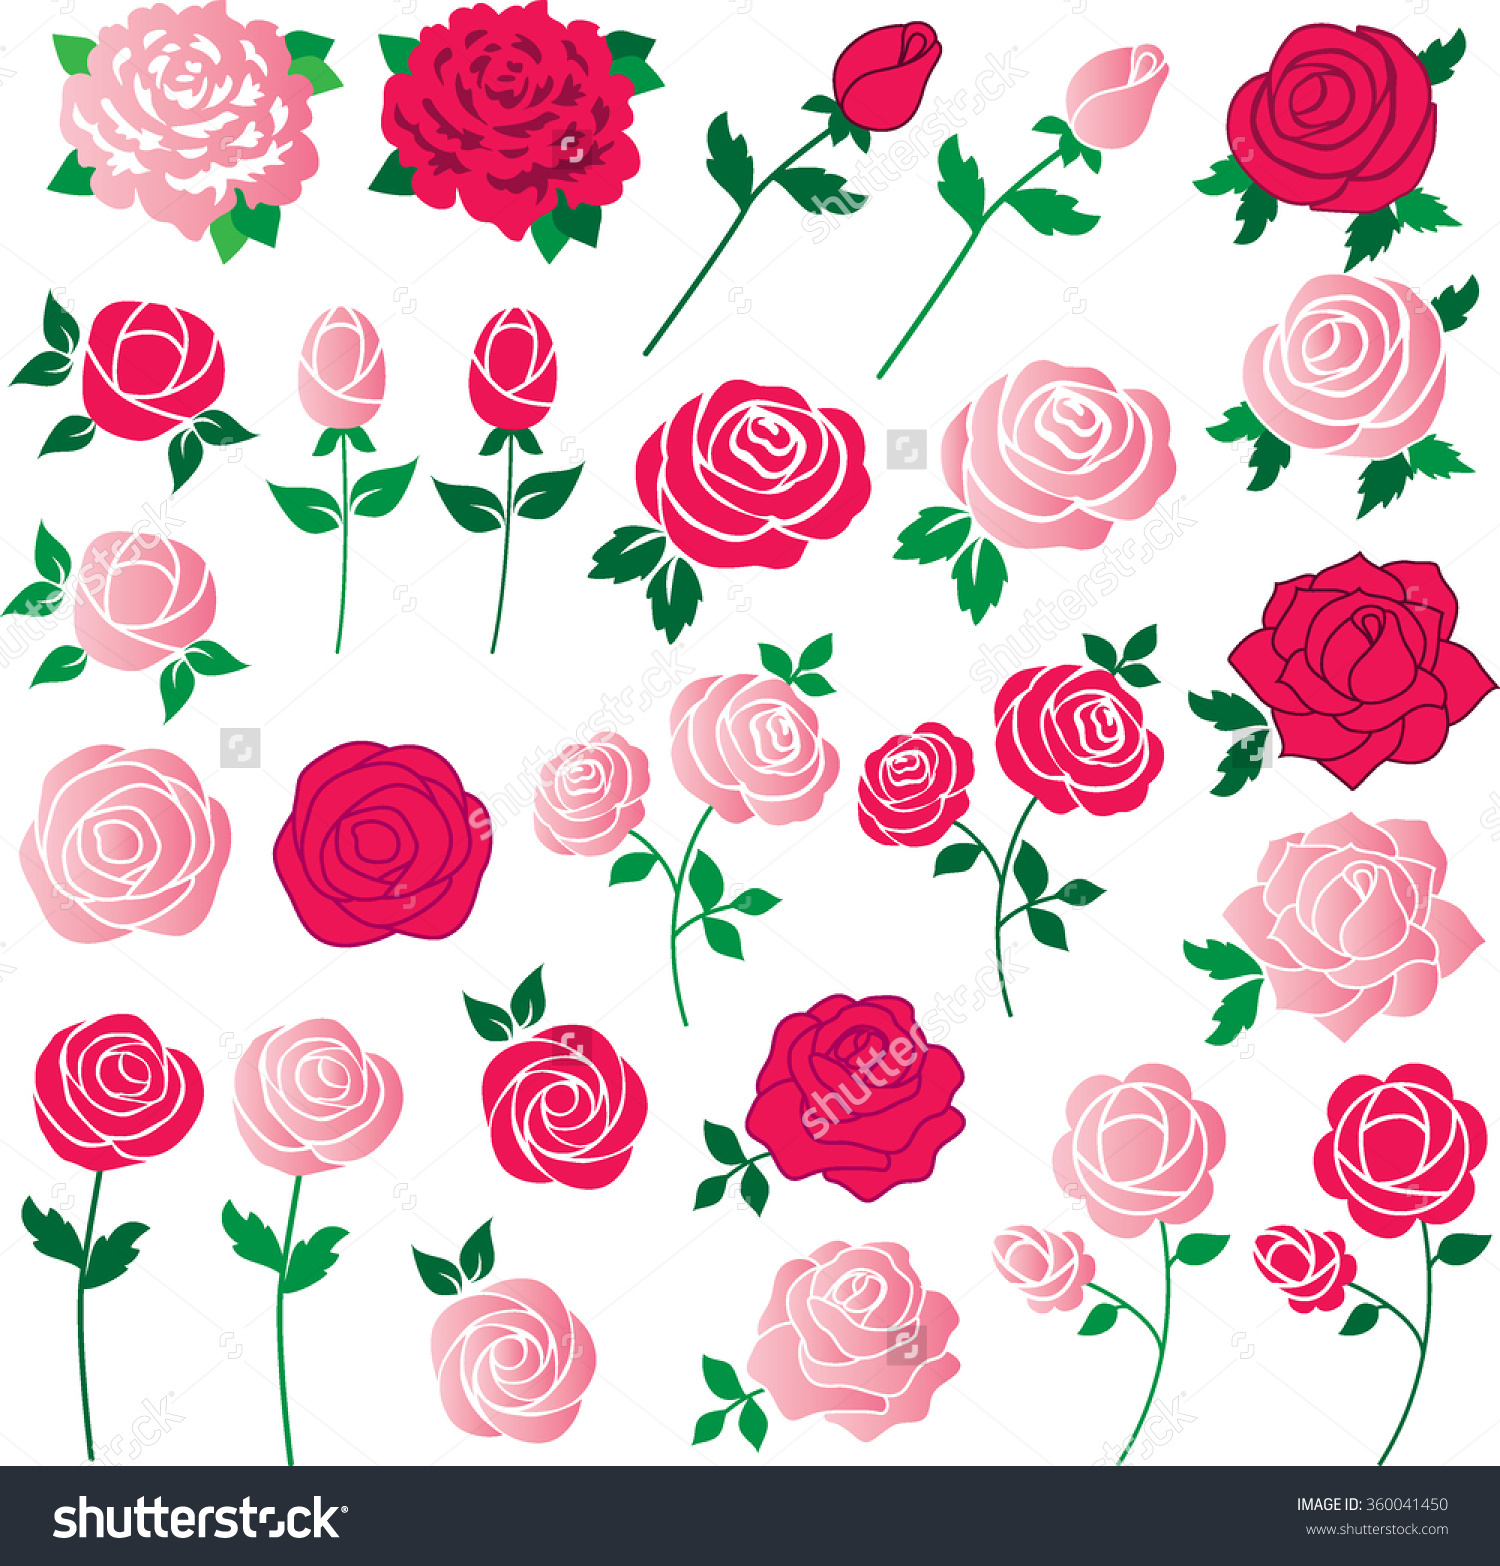 Rose Clipart Stock Vector 360041450.